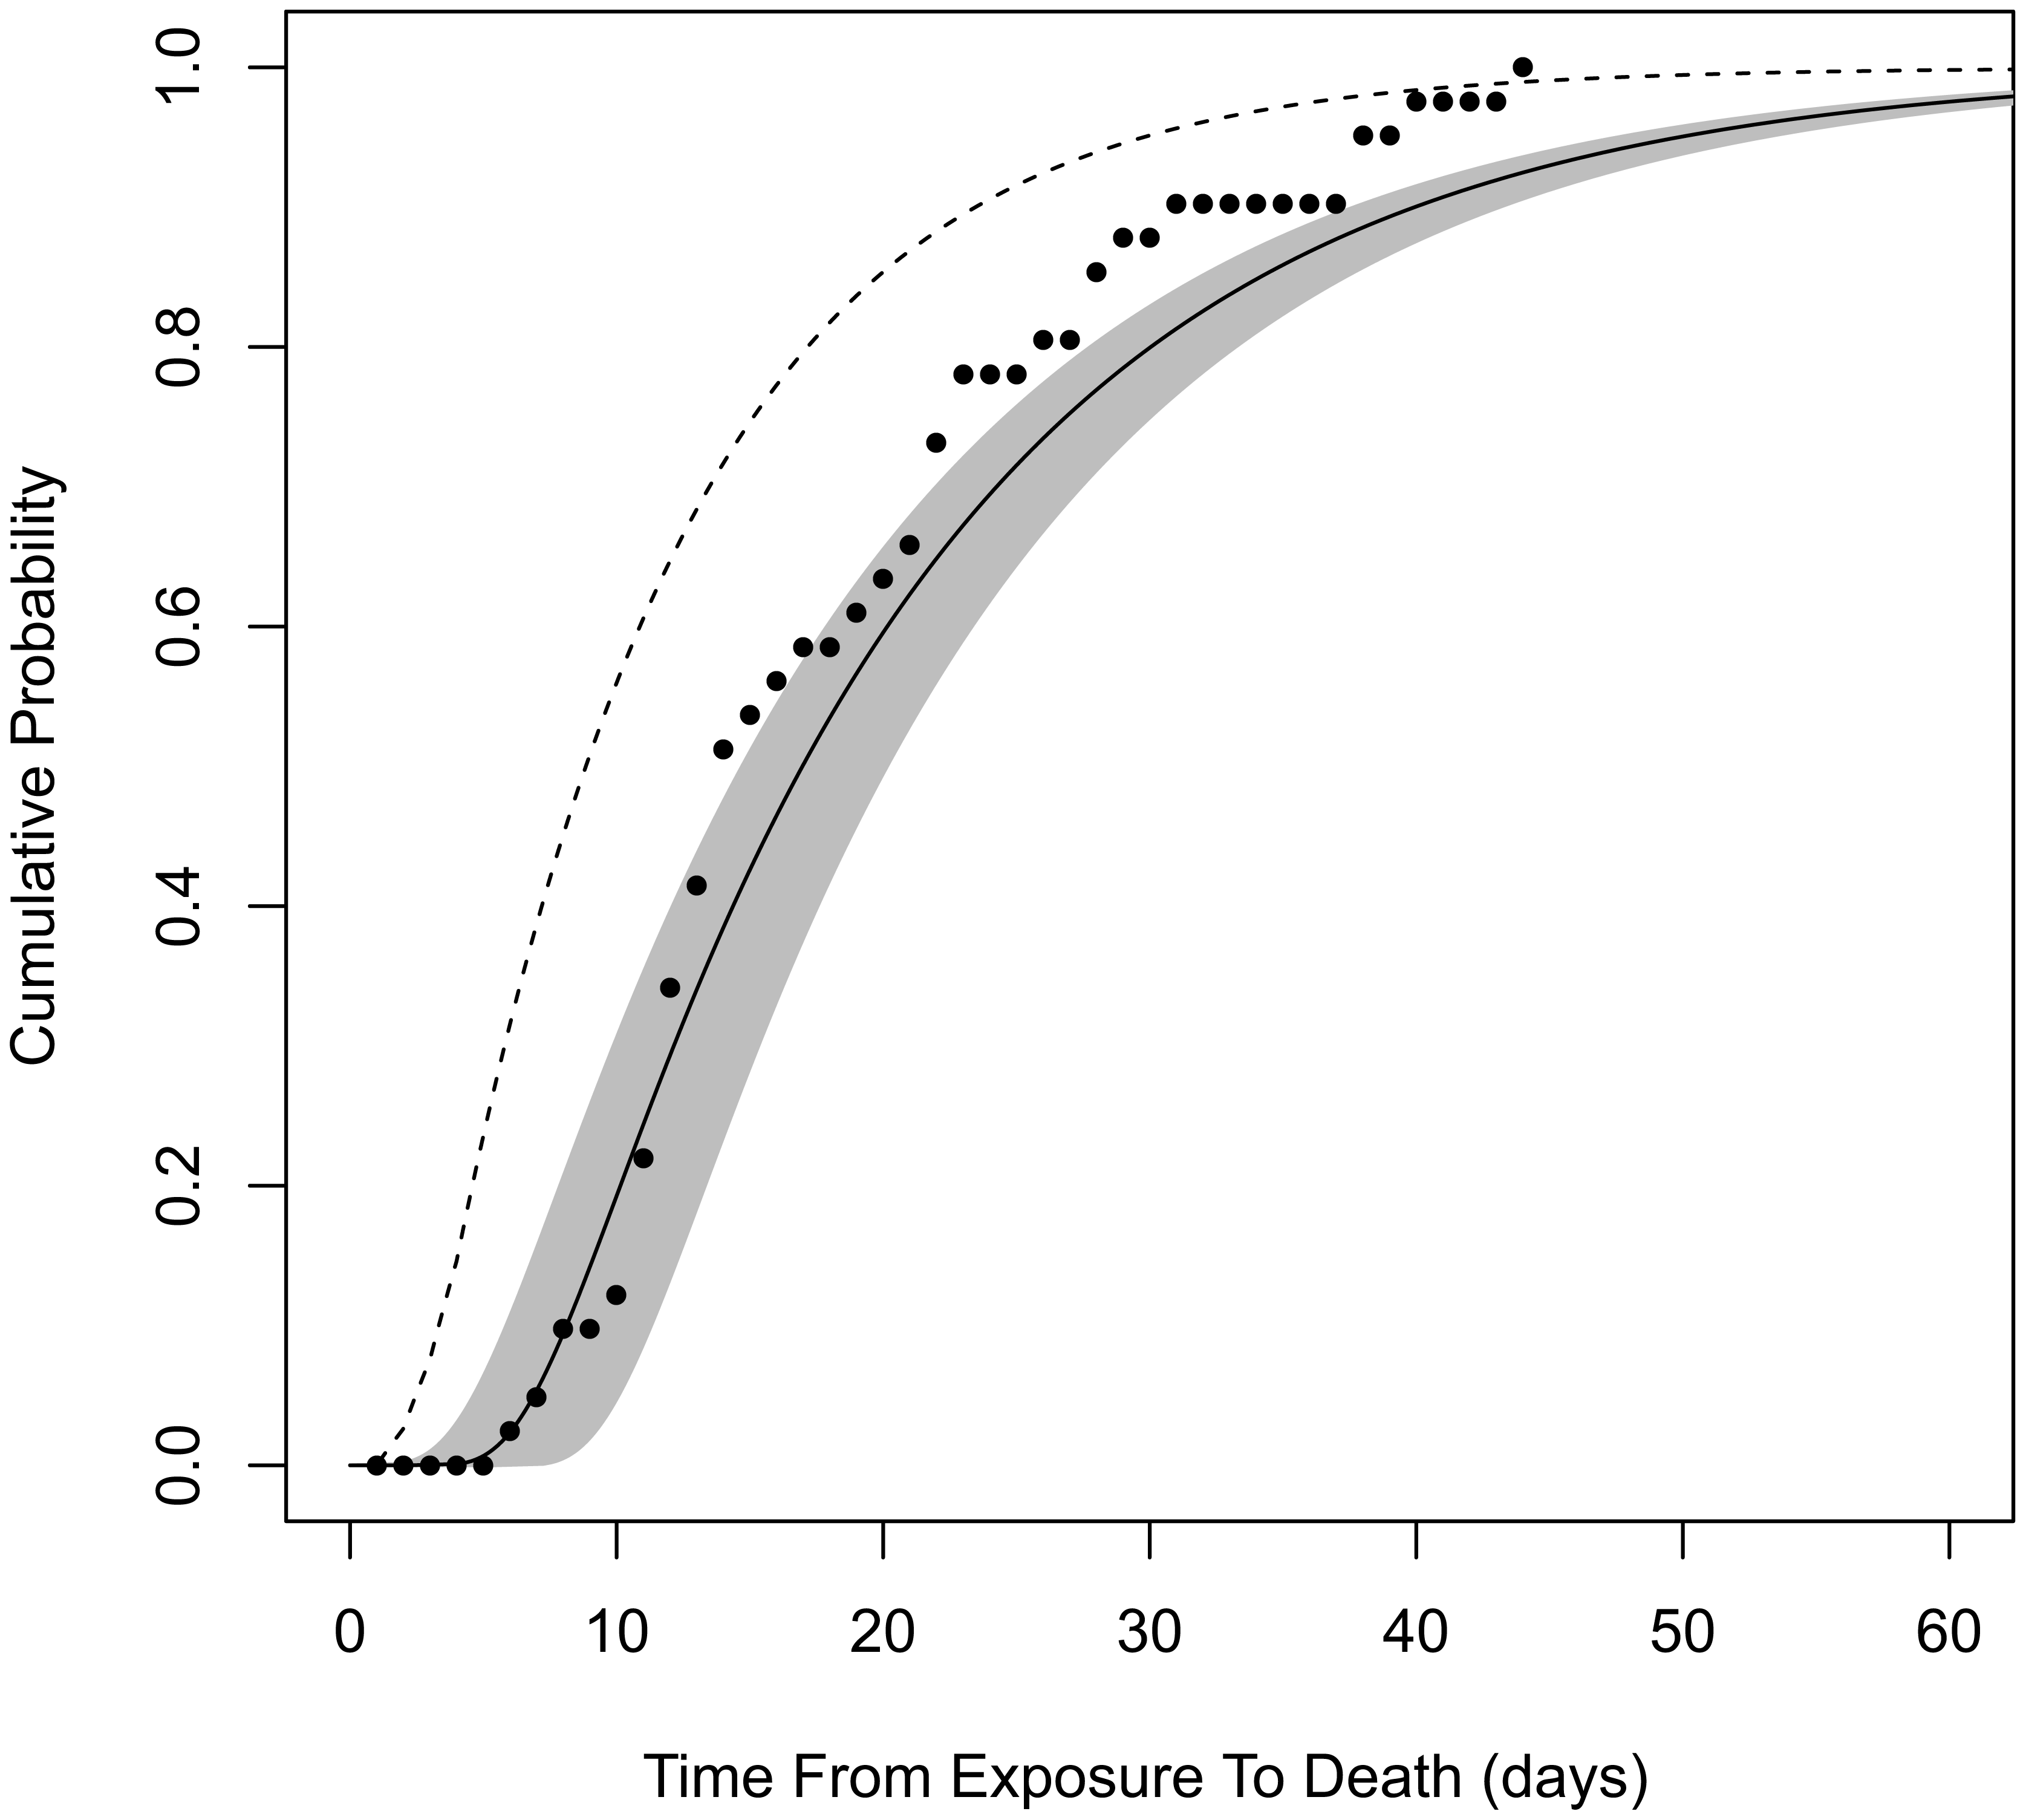 Cumulative distribution function for time from exposure to death.